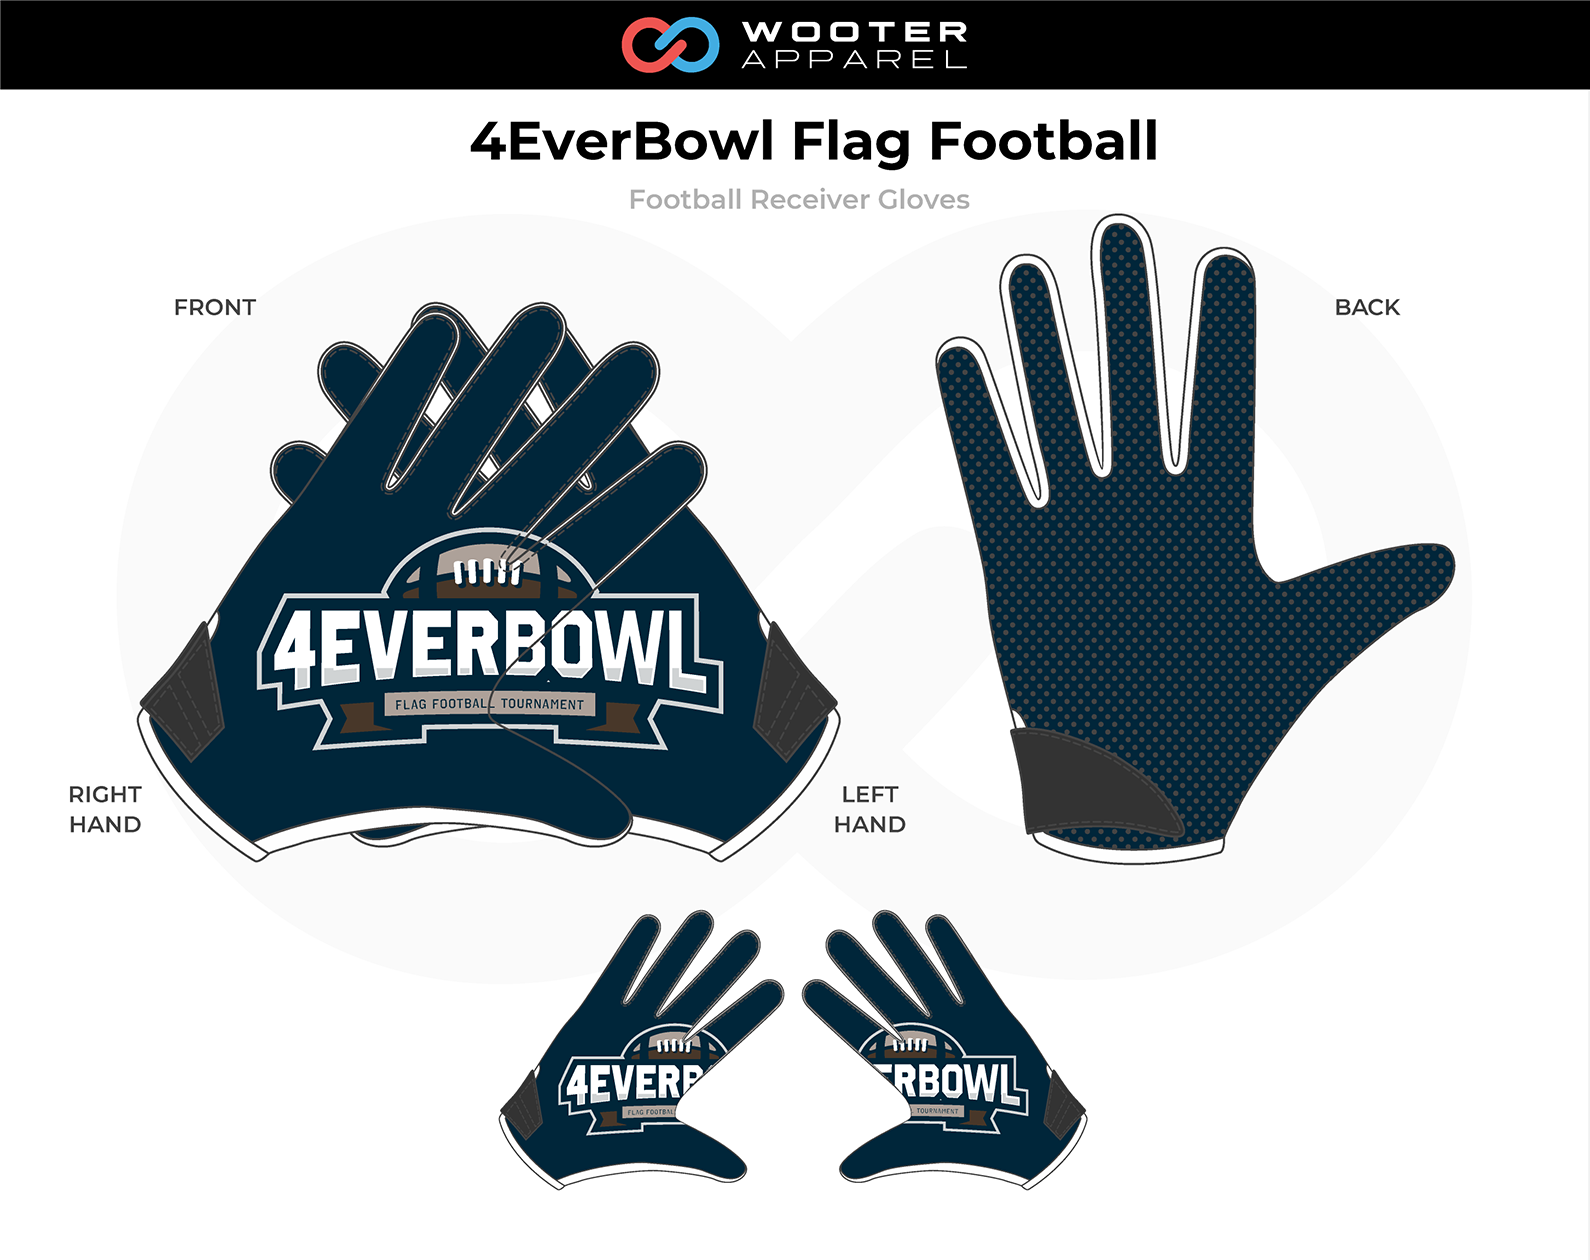 2019-03-15 4EverBowl Flag Football Receiver Gloves (B).png